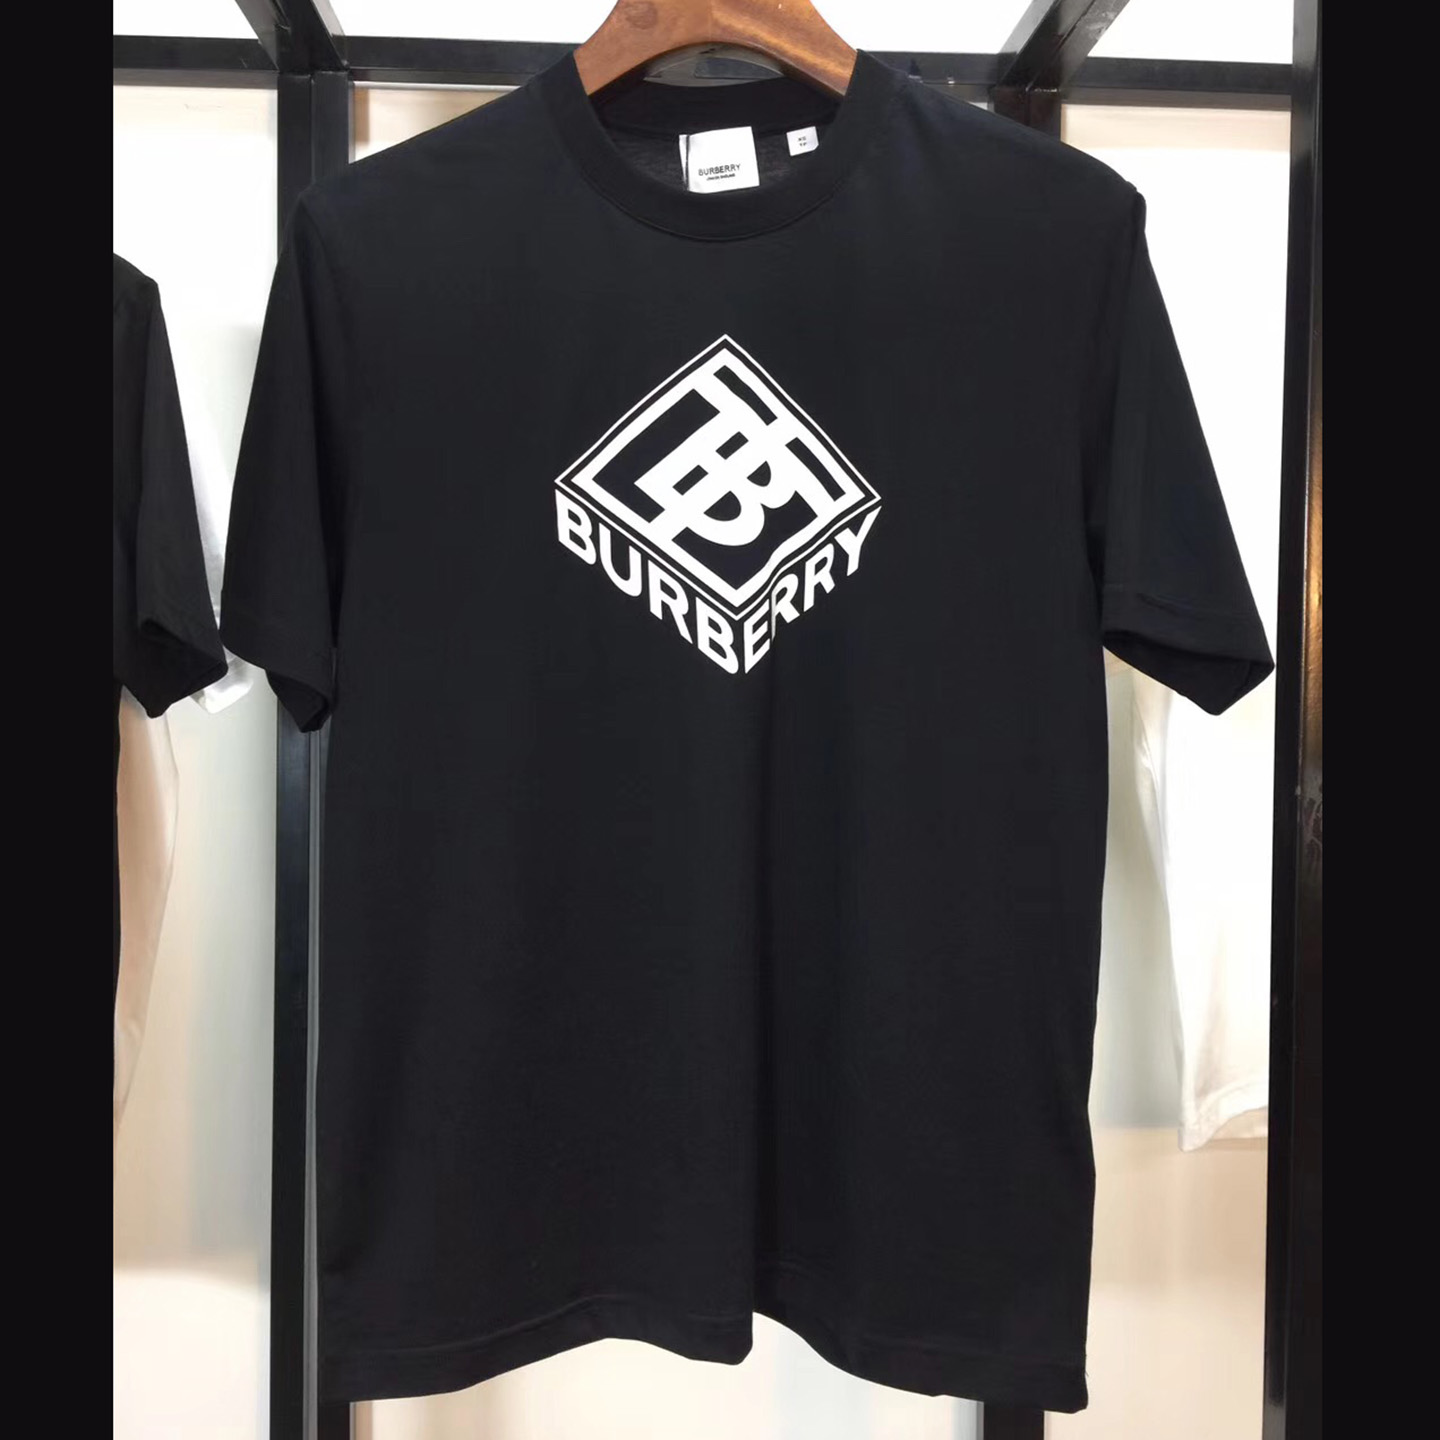 Burberry Logo Graphic Cotton T-shirt Black - FashionBeast